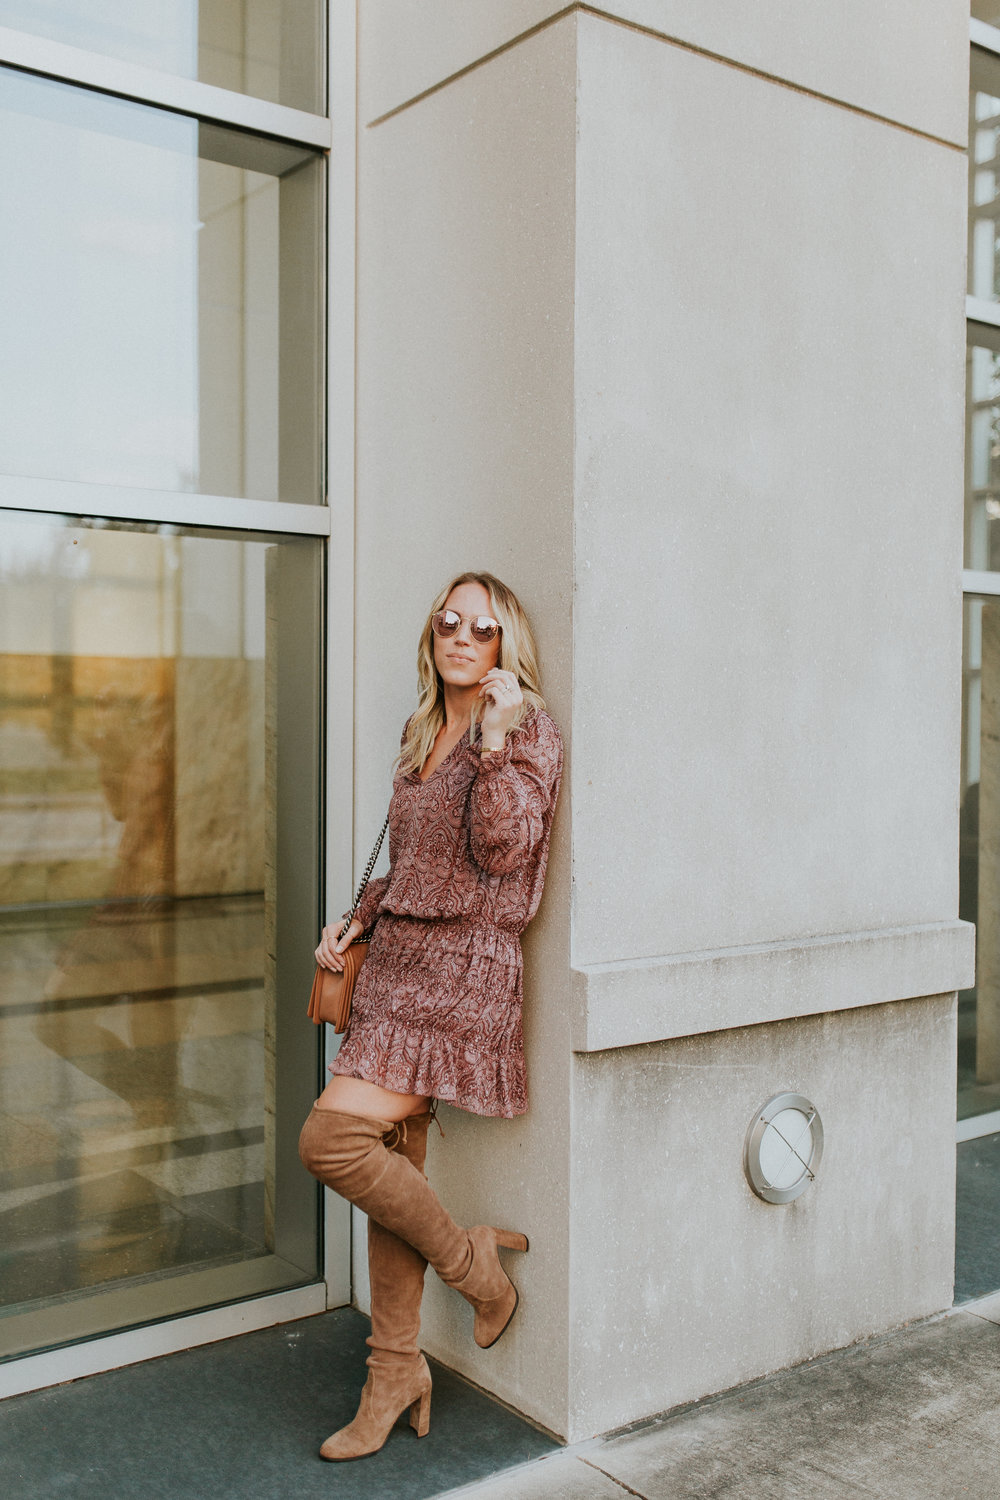 Blogger Gracefully Taylored in Joie Dress and Stuart Weitzman Boots(21).jpg